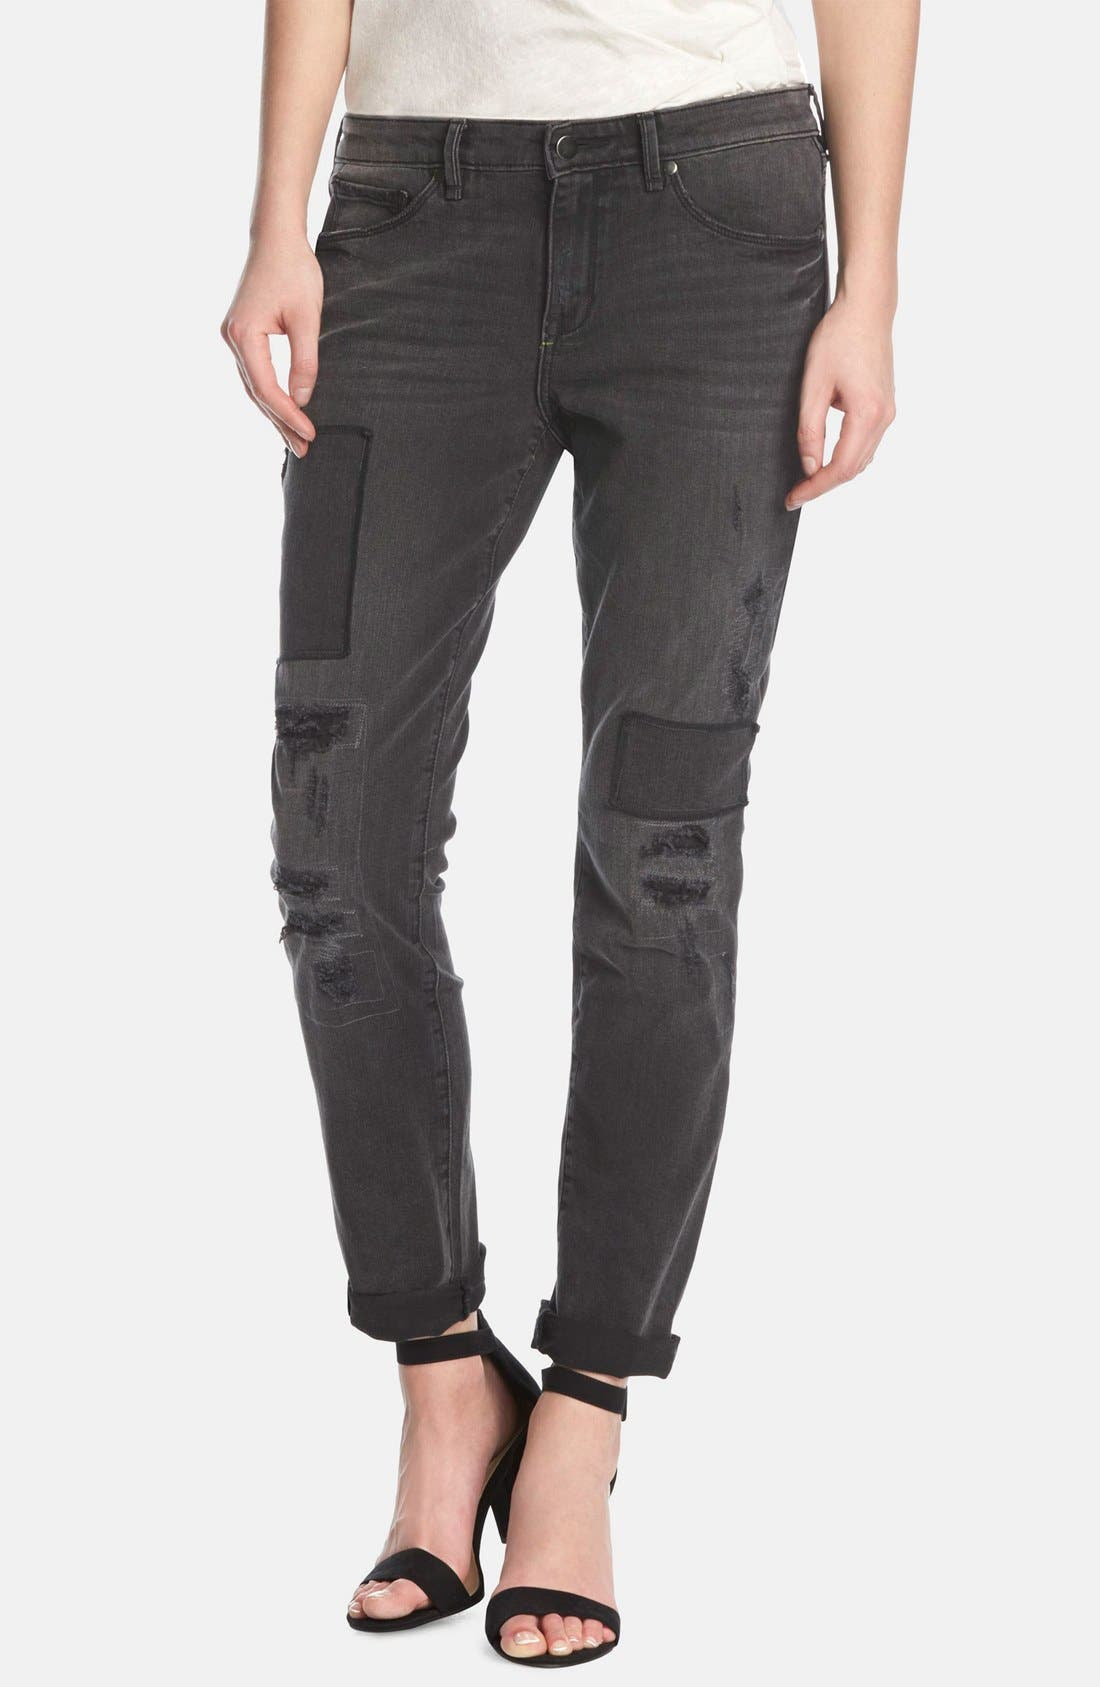 KIIND OF, 'Artful' Distressed Relaxed Jeans, Main thumbnail 1, color, 001